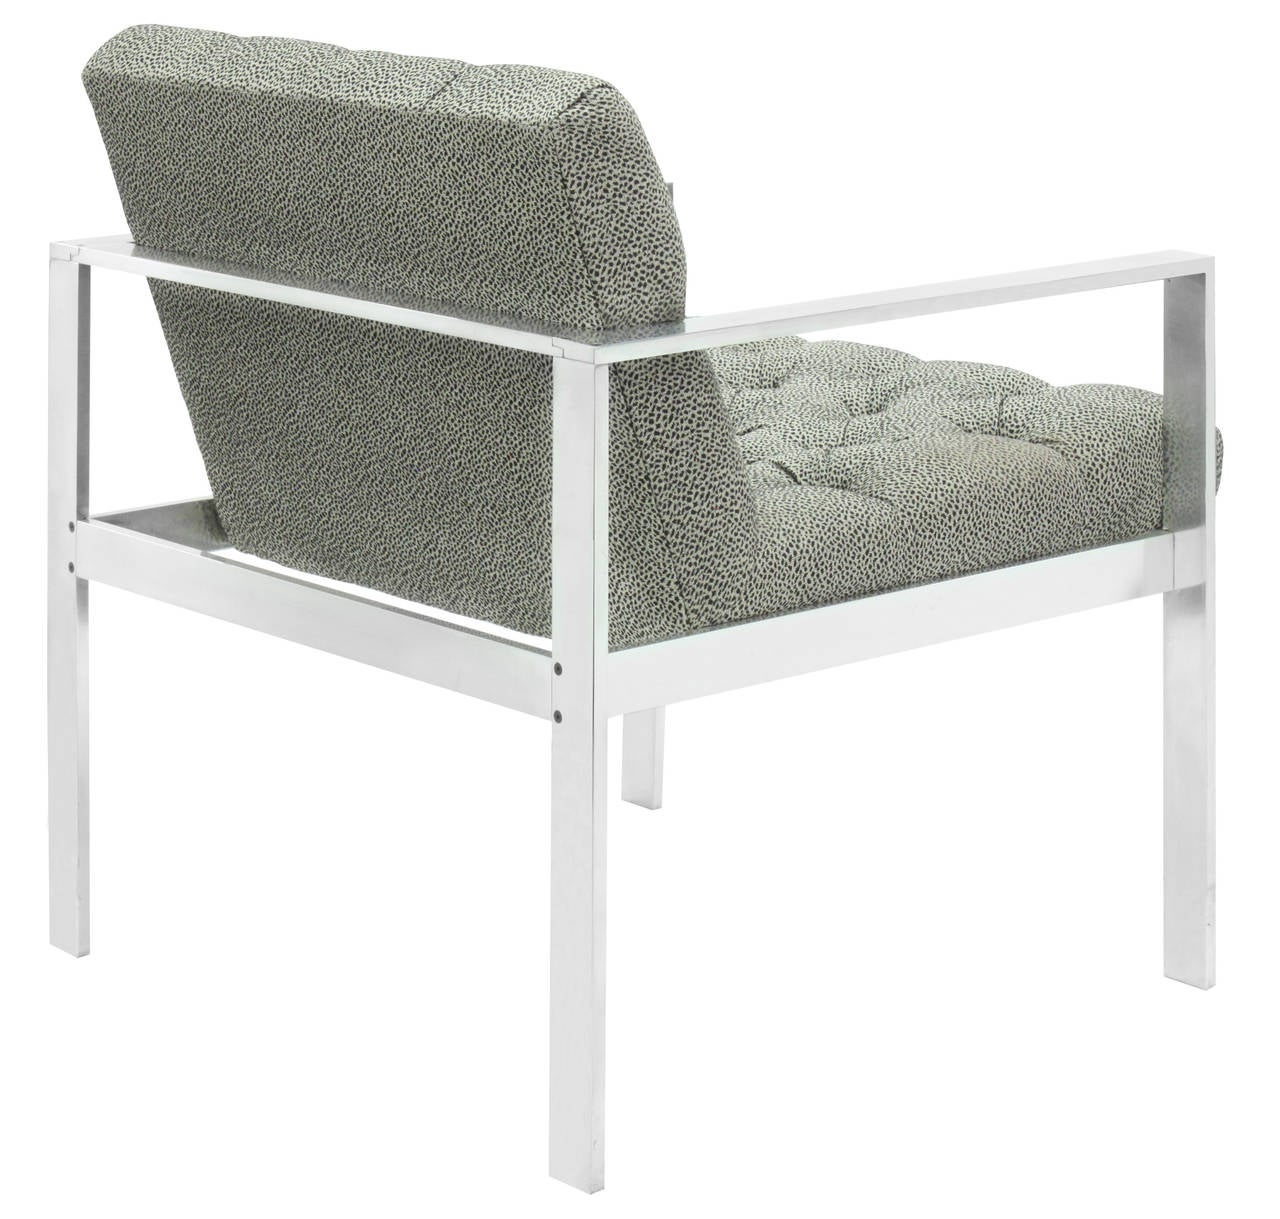 Lounge Chair with Aluminium Frame by Harvey Probber 3